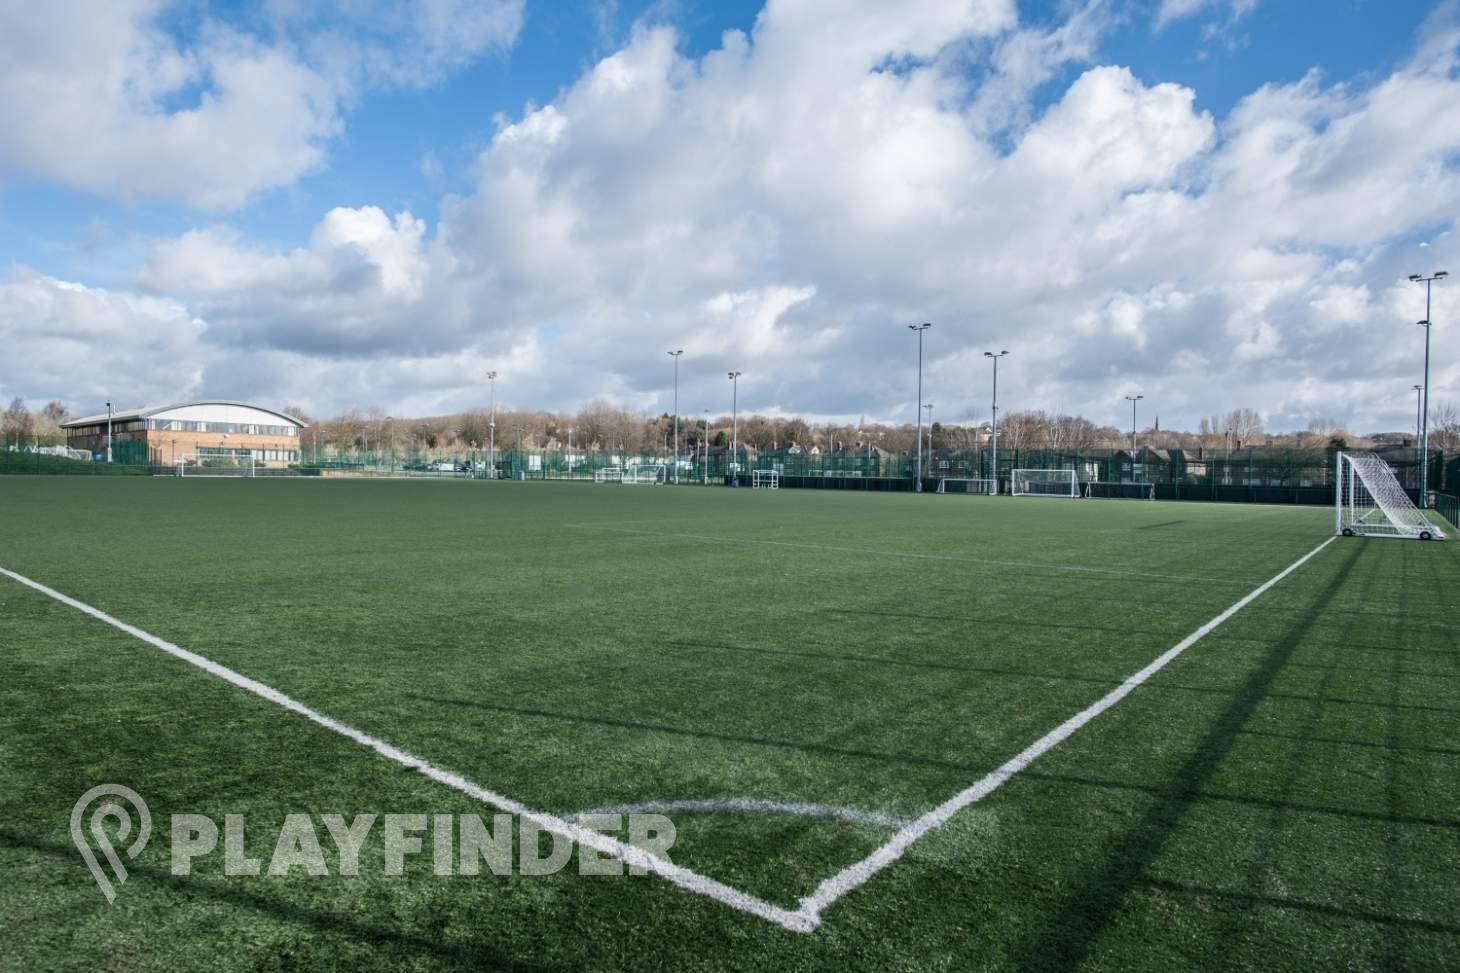 Salford Sports Village 11 a side | 3G Astroturf football pitch